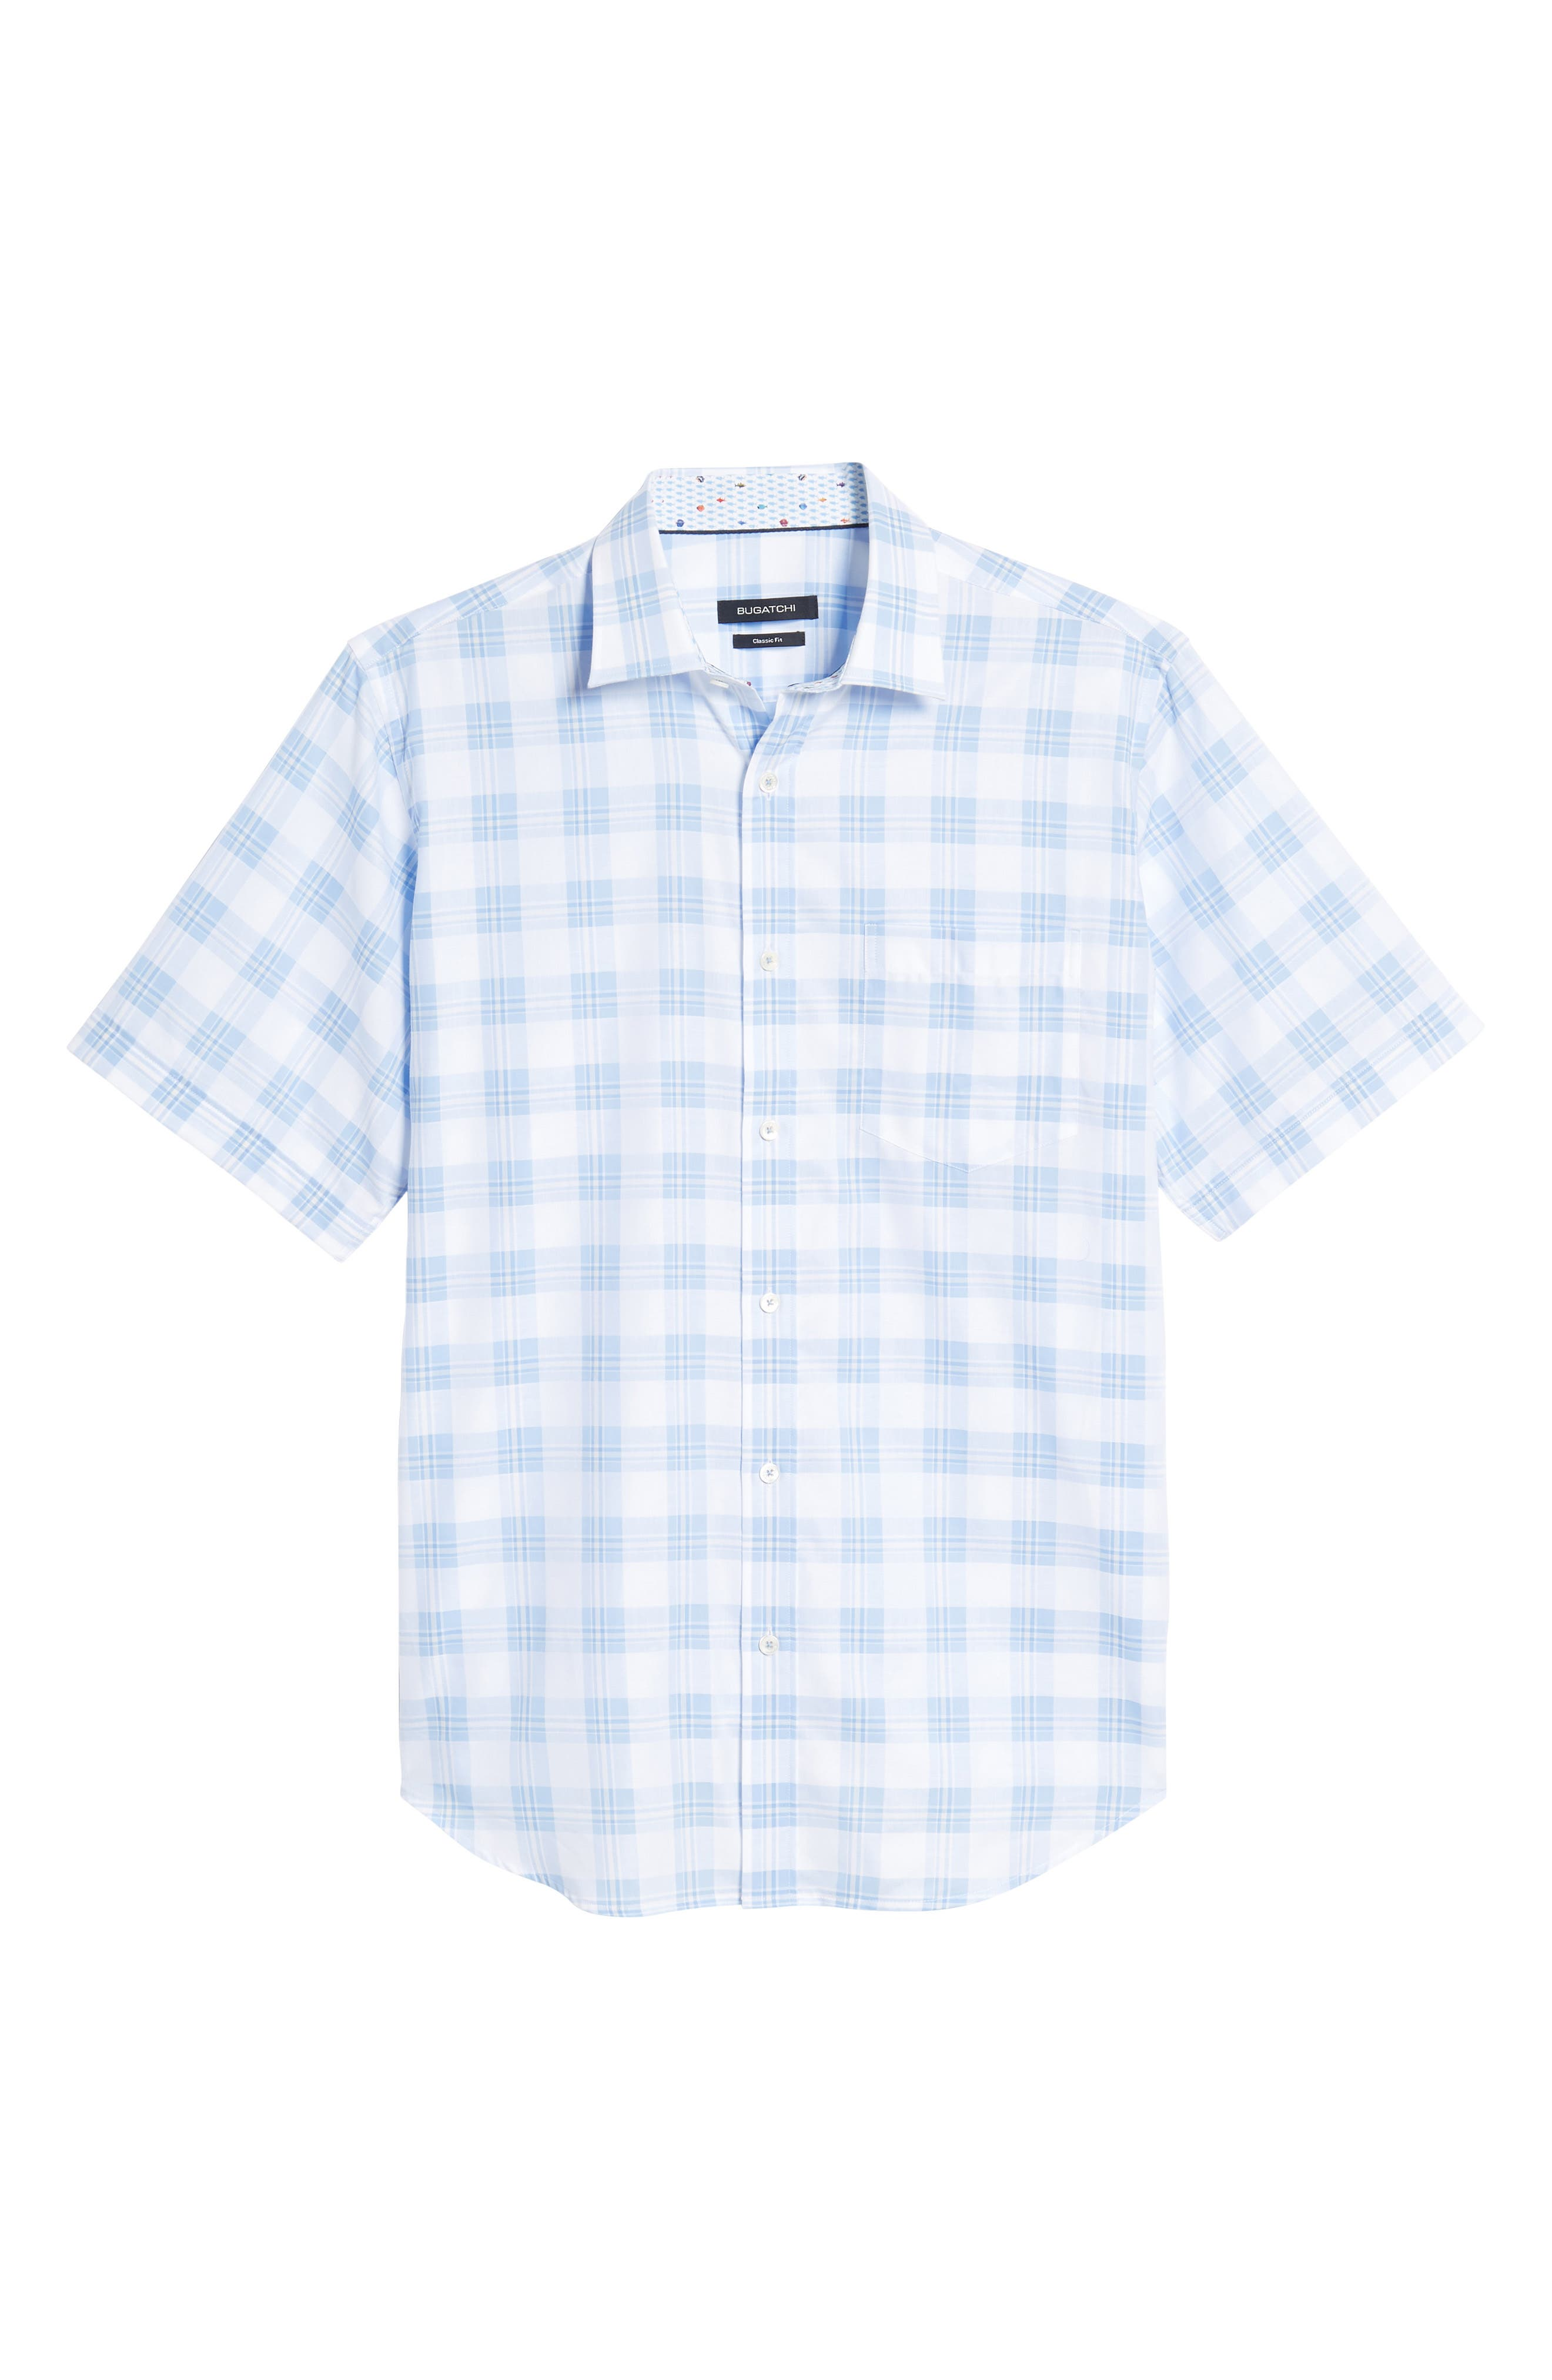 Classic Fit Tartan Check Sport Shirt,                             Alternate thumbnail 6, color,                             Sky